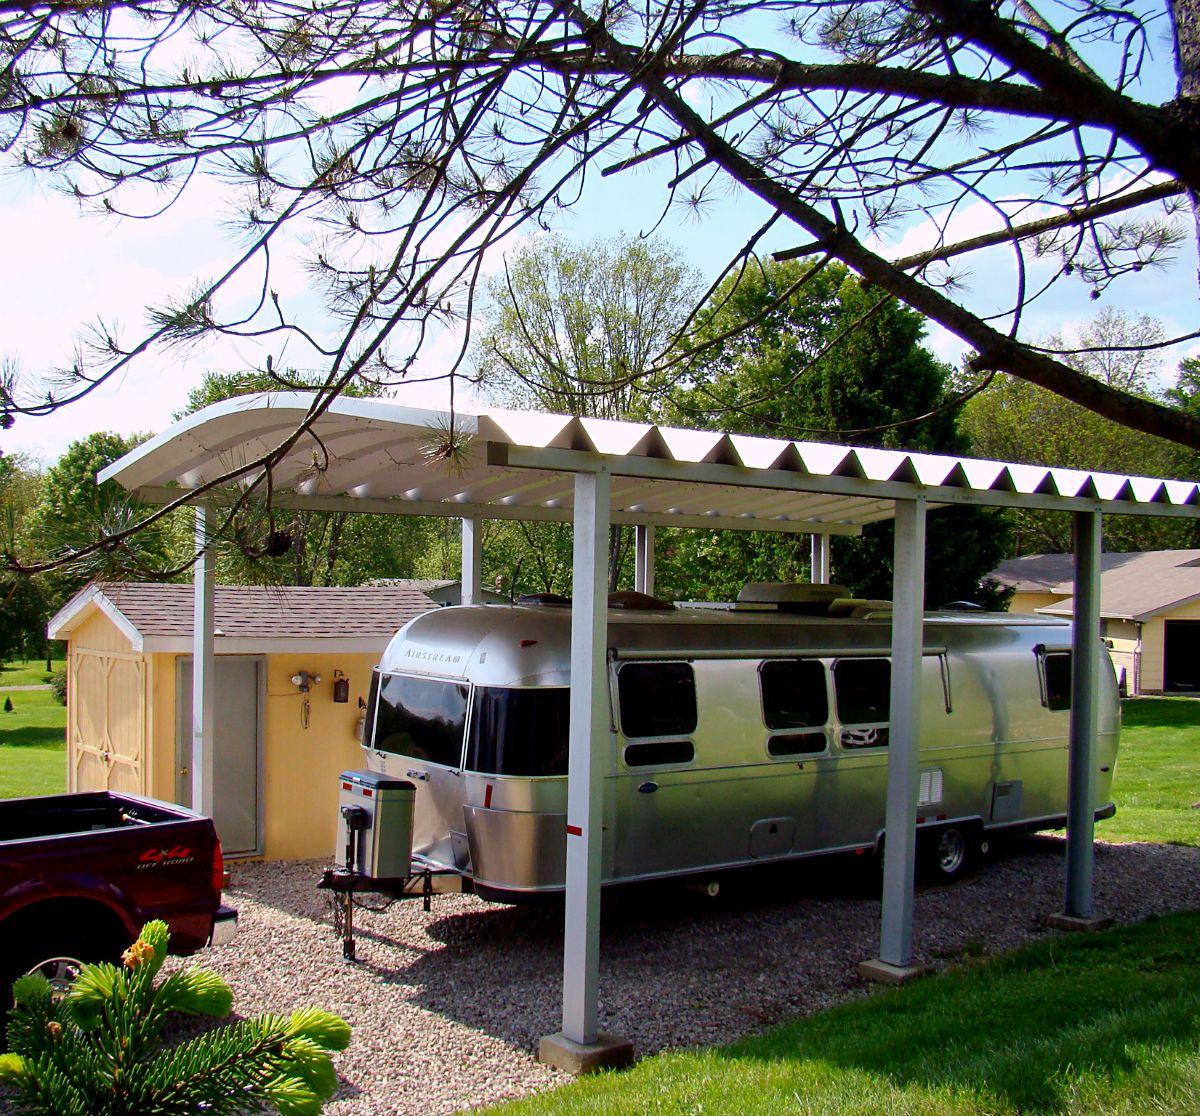 Steel Carport Garage Kits: Metal RV Garages: Prefab Steel Motorhome Garage Kits